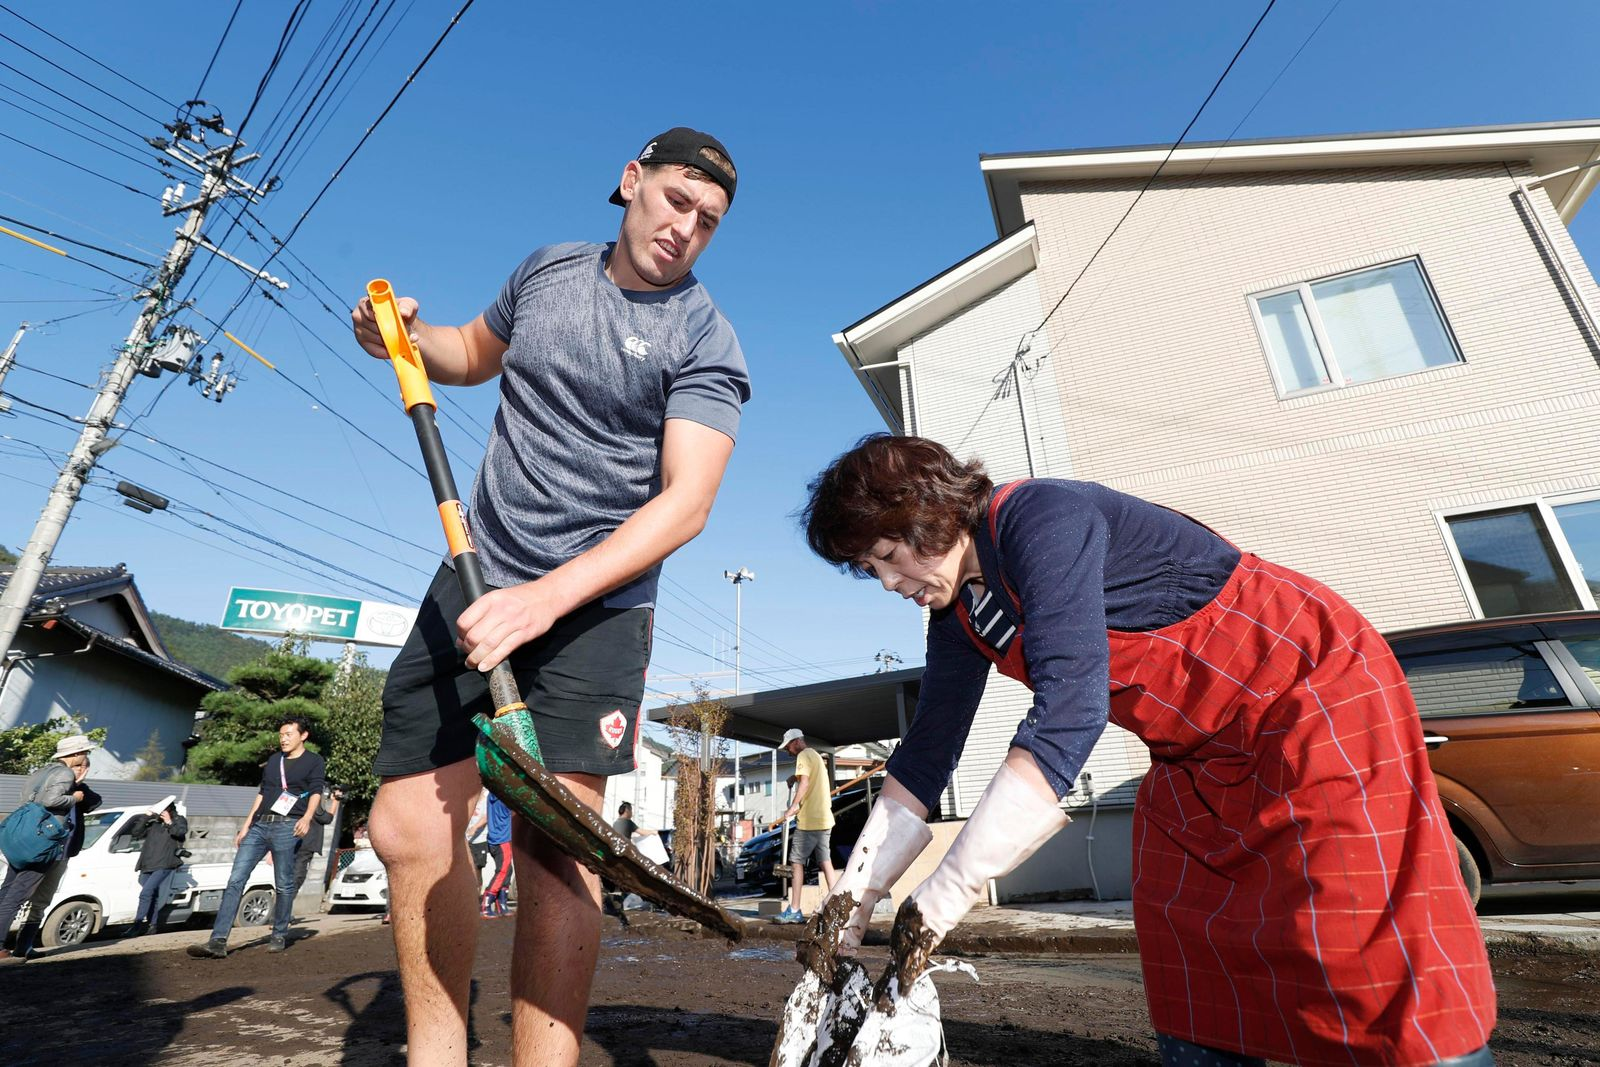 In this Oct. 13, 2019, photo, Canadian rugby player Josh Larsen, left, helps a resident to clean a road in Kamaishi, Iwate prefecture,  Japan, following the cancellation of their Rugby World Cup Pool B match against Namibia due to Typhoon Hagibis. The powerful typhoon unleashed torrents of rain and strong winds Saturday that left thousands of homes on Japan's main island flooded, damaged or without power. (Kyodo News via AP)